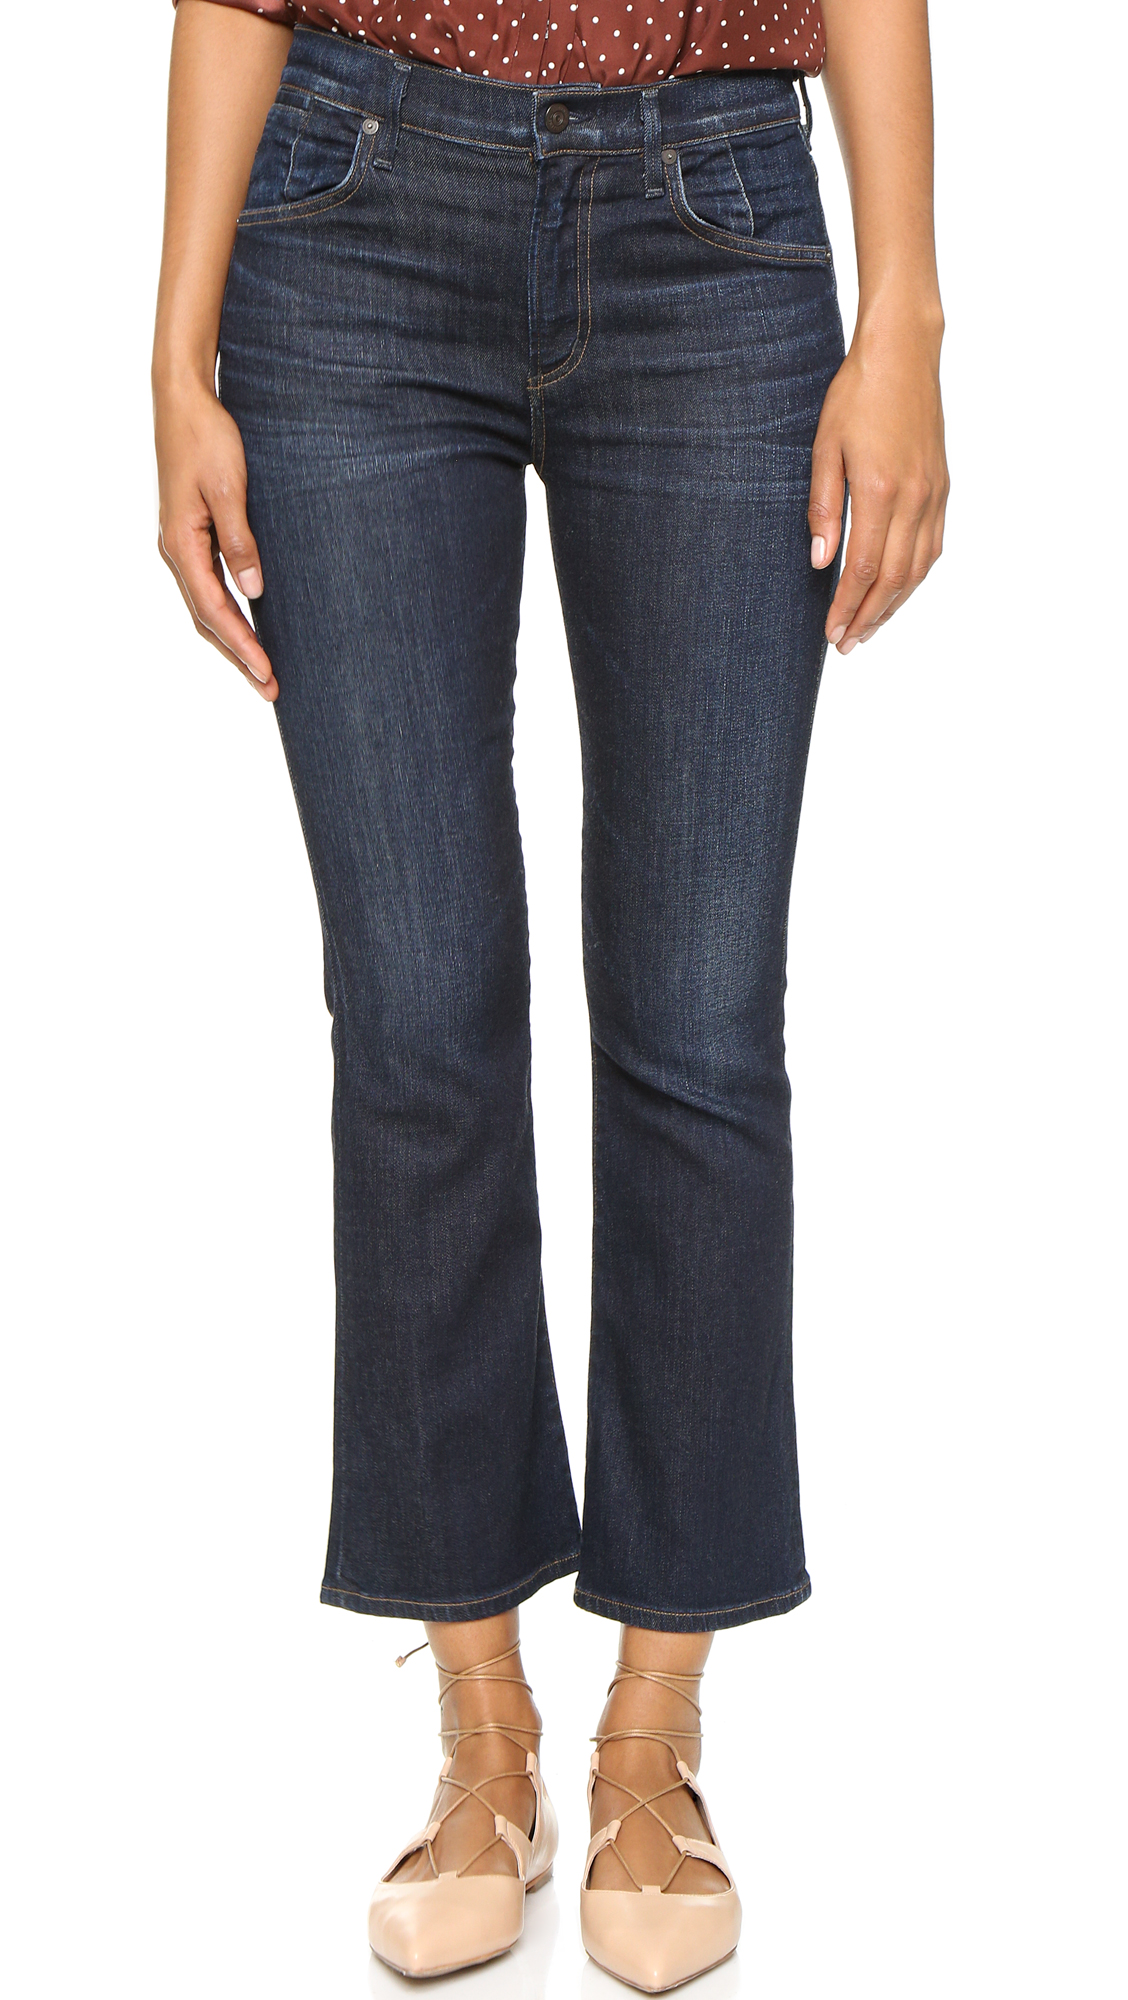 Citizens Of Humanity Fleetwood High Rise Crop Flare Jeans - Icon at Shopbop